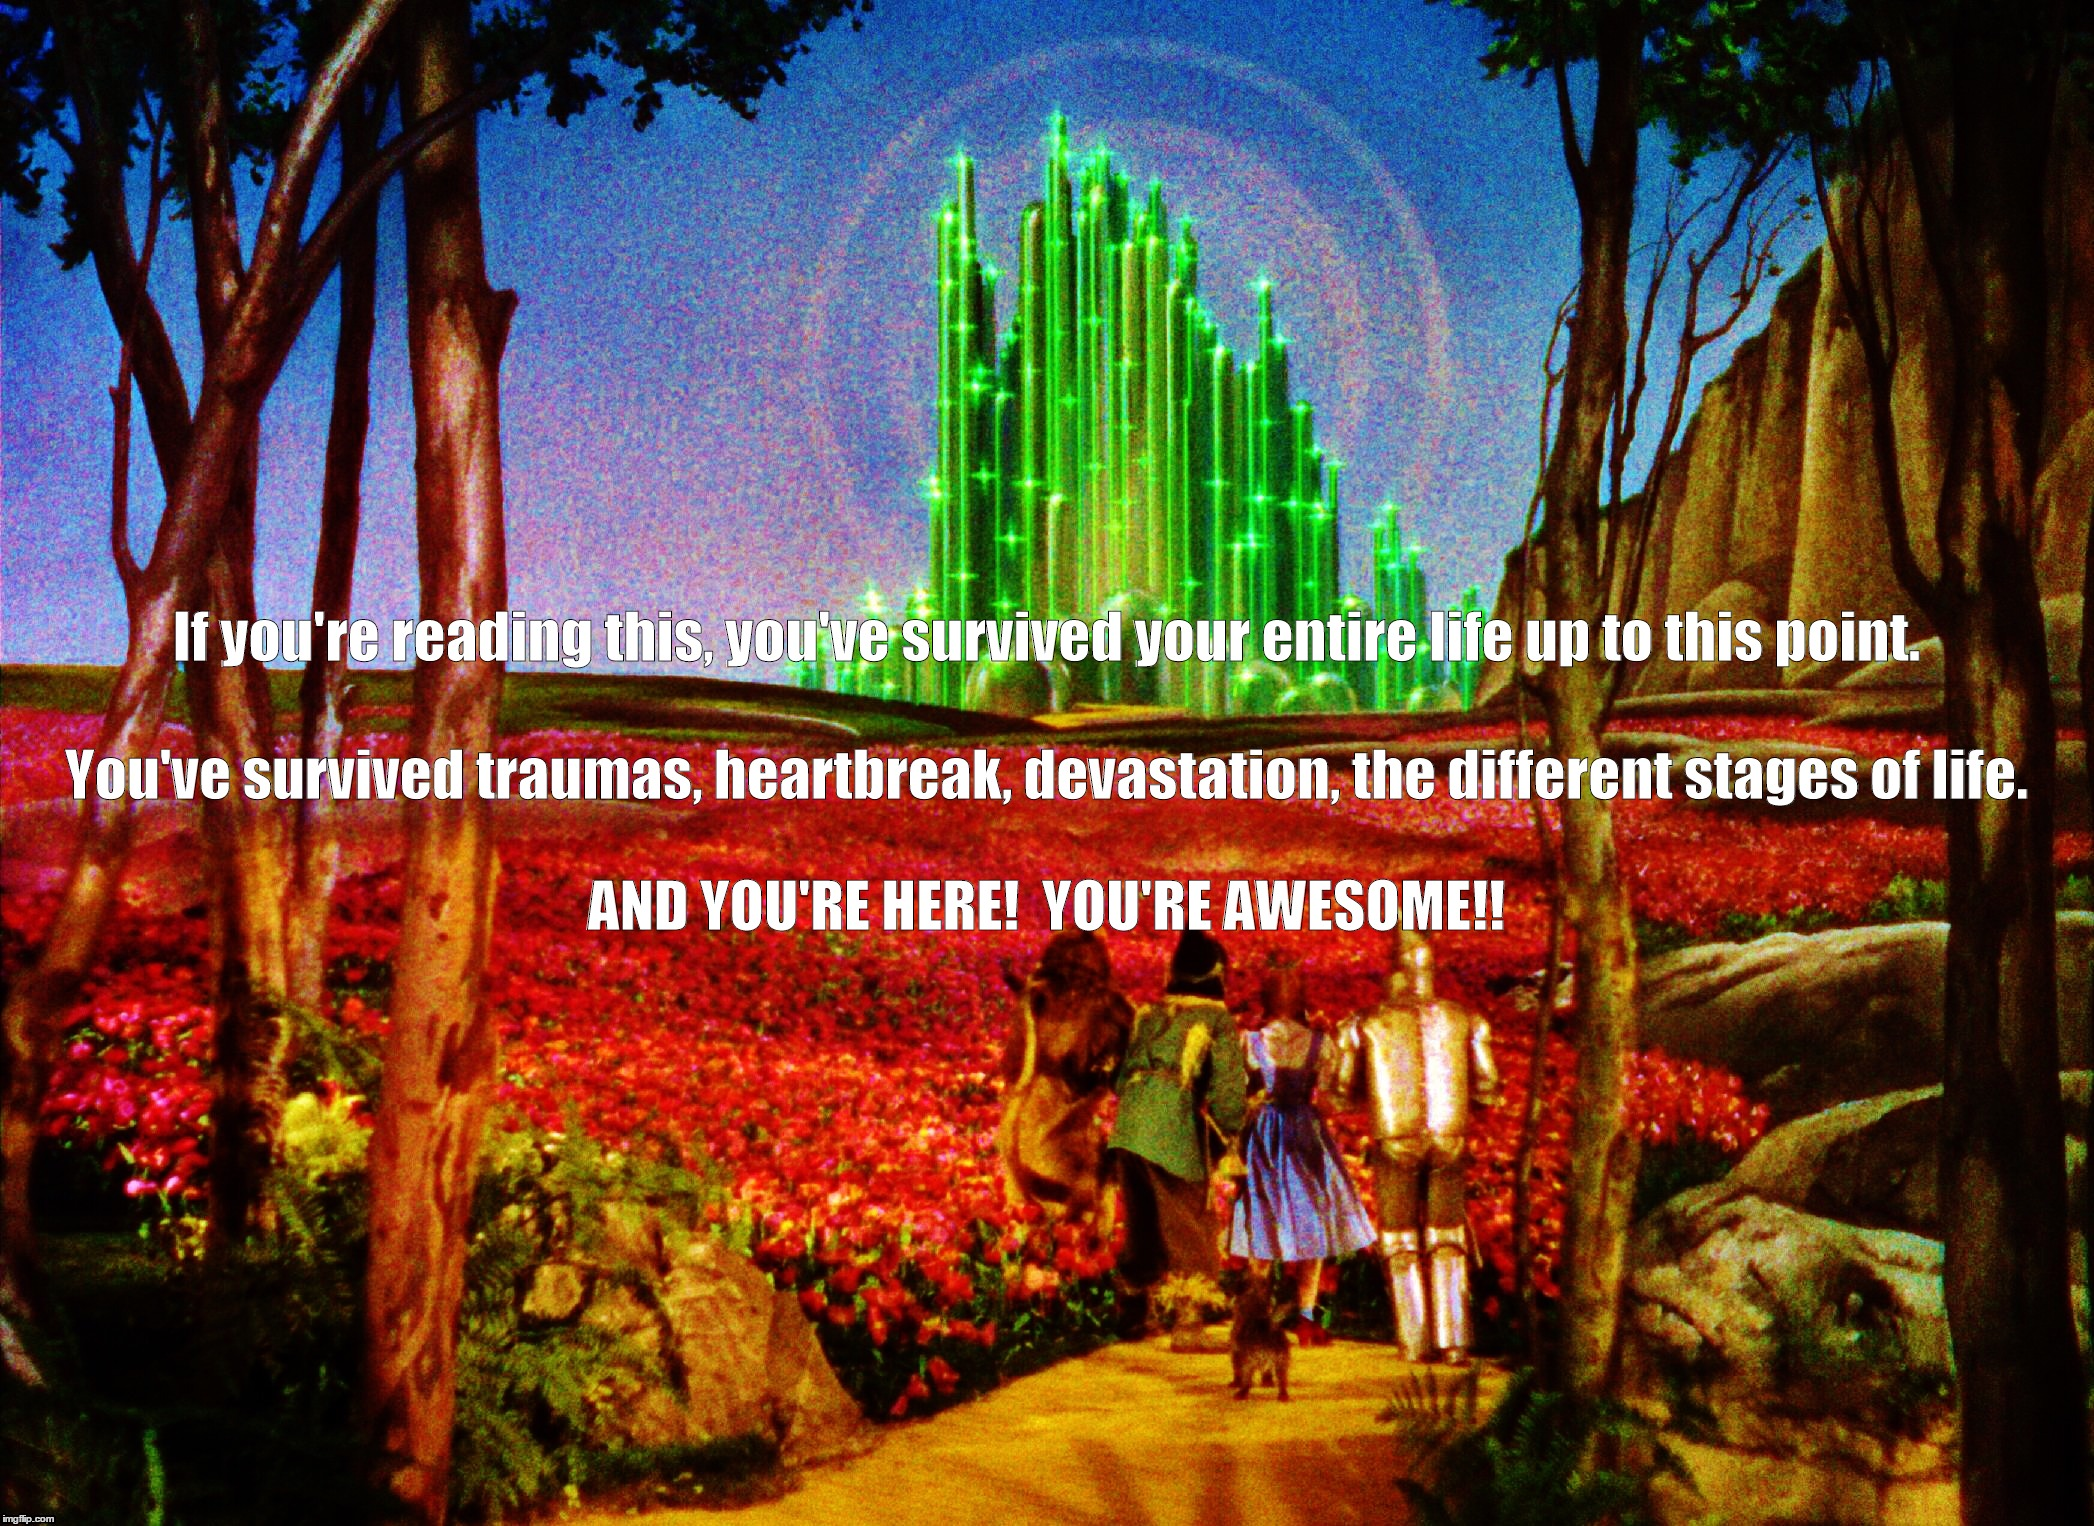 If you're reading this, you've survived your entire life up to this point. AND YOU'RE HERE!  YOU'RE AWESOME!! You've survived traumas, heart | image tagged in wizard of oz,you're awesome,emerald city | made w/ Imgflip meme maker